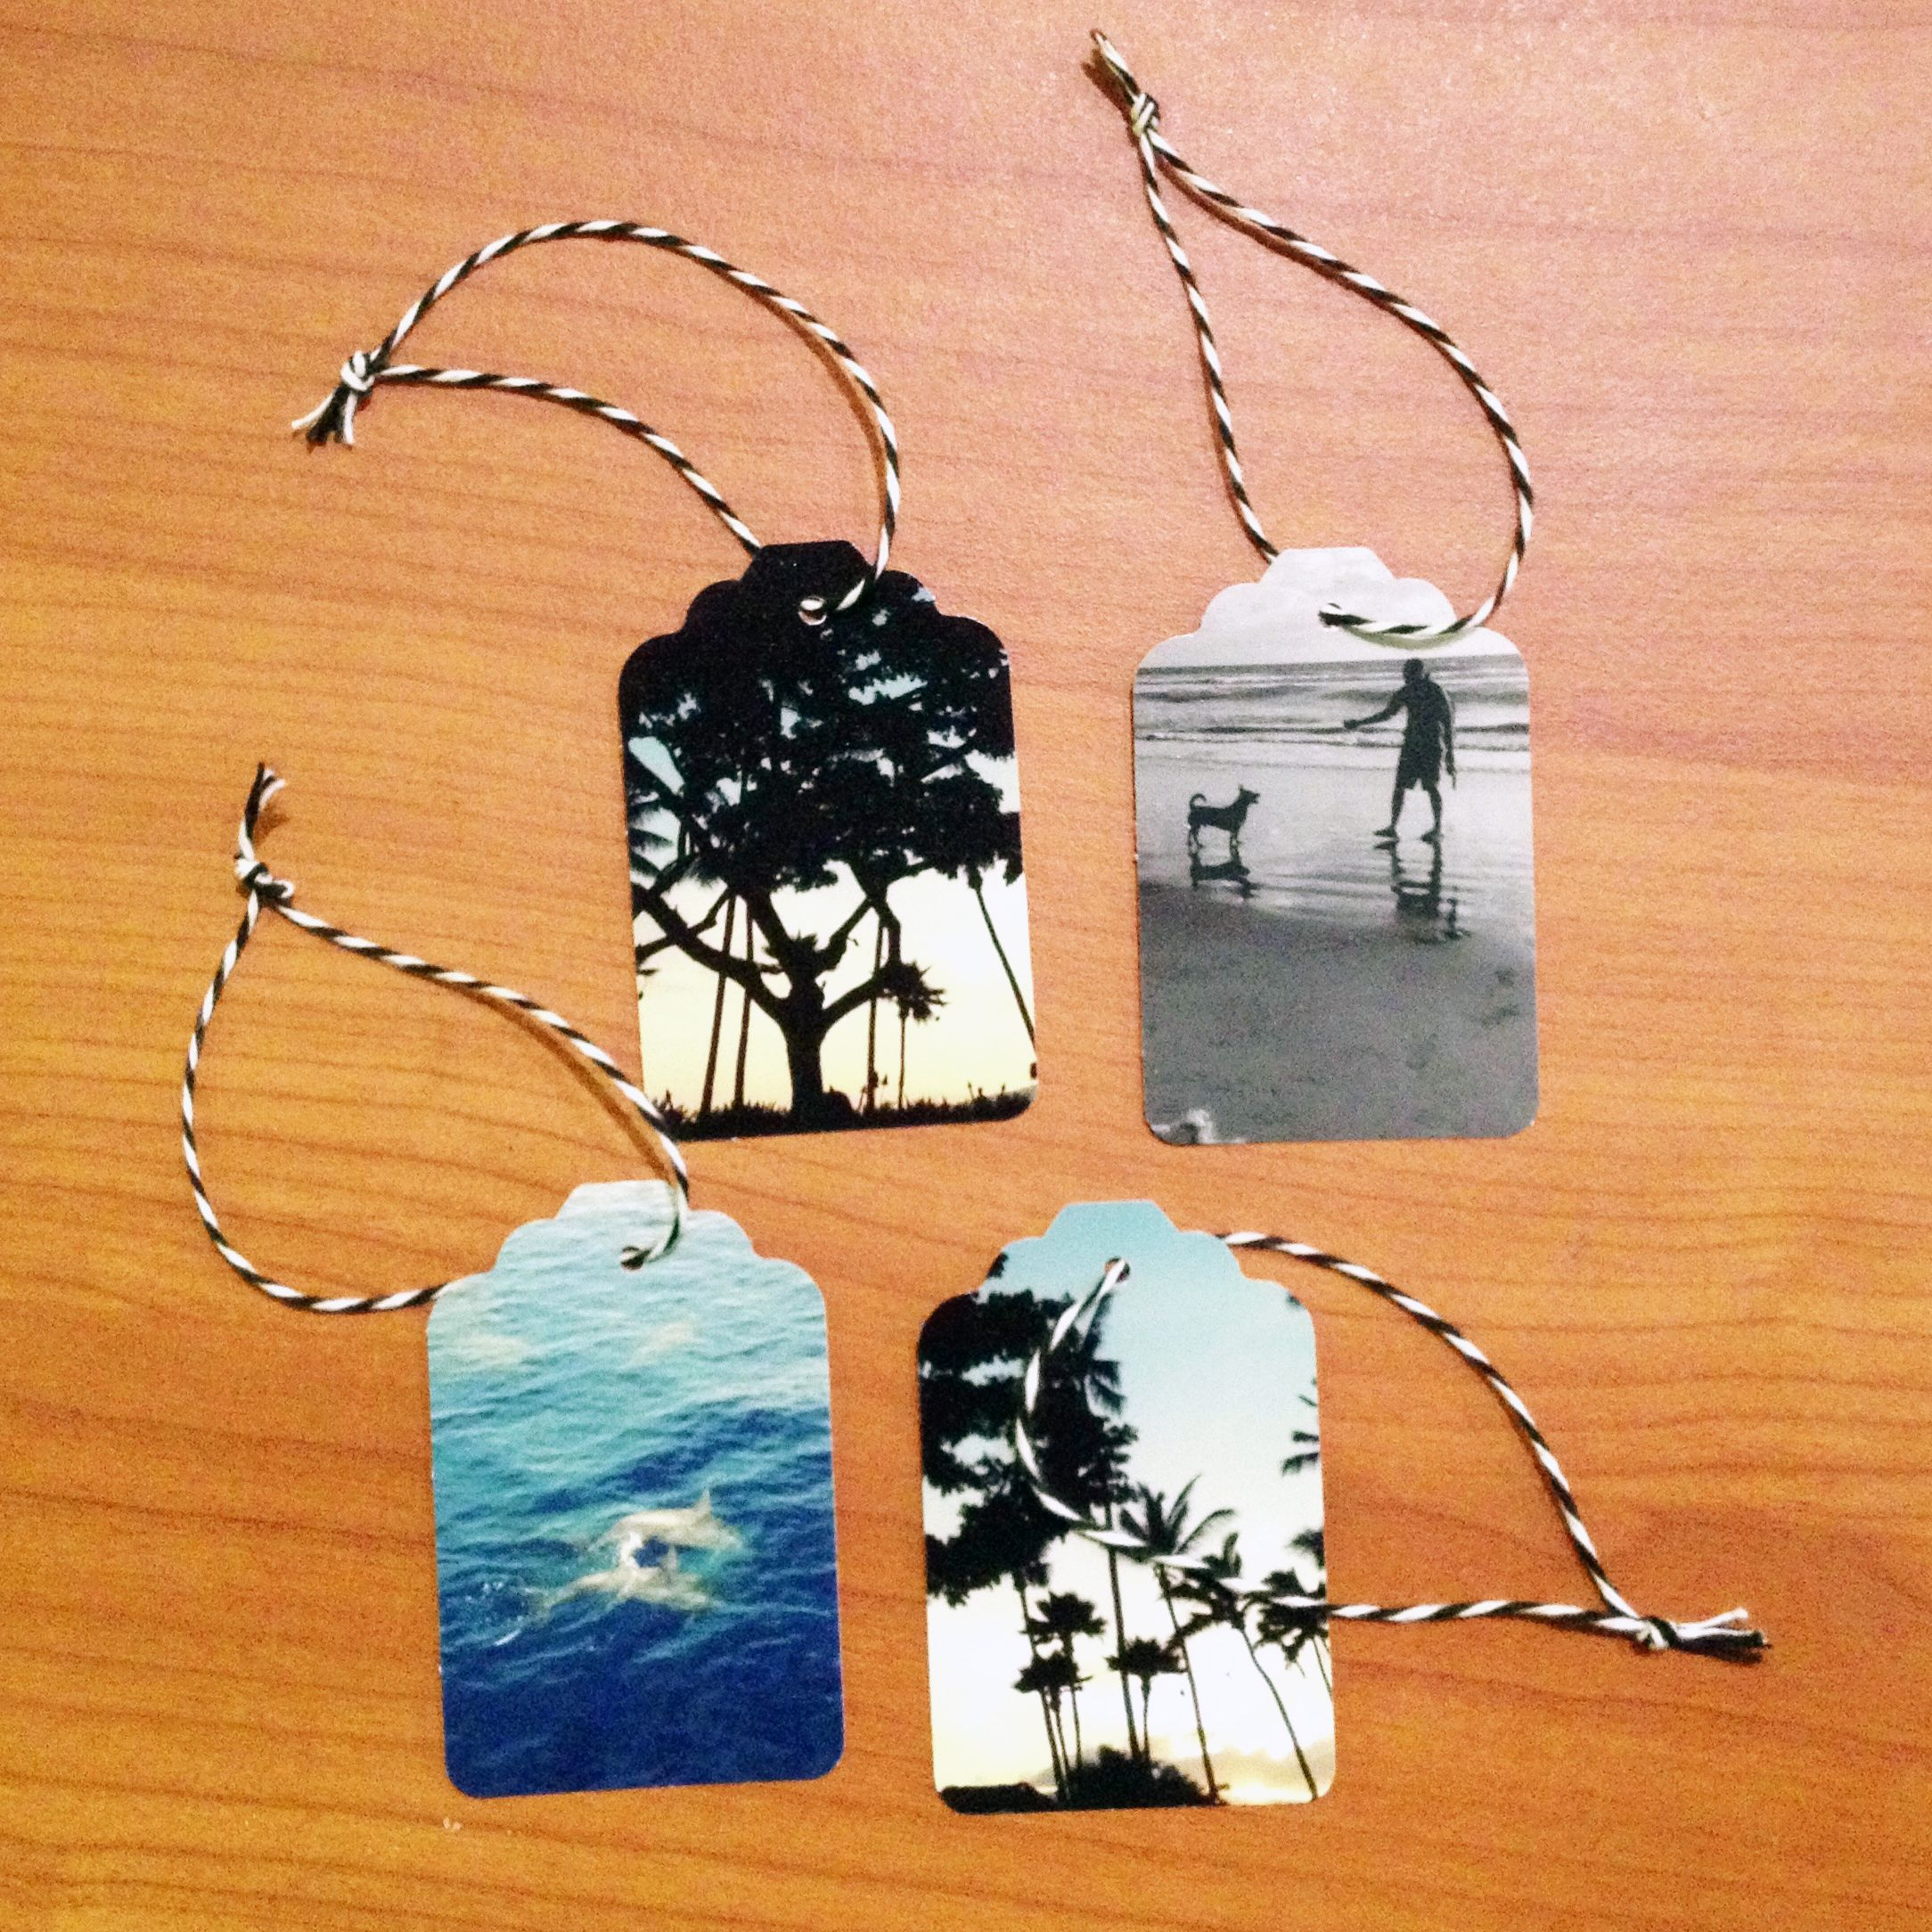 Ooo I have this Punch.. and Instagram! Instagram Photo Prints Hang Tags DIY - Not just for Christmas. Use Instagram photos to create handmade gift tags for holidays and birthdays.